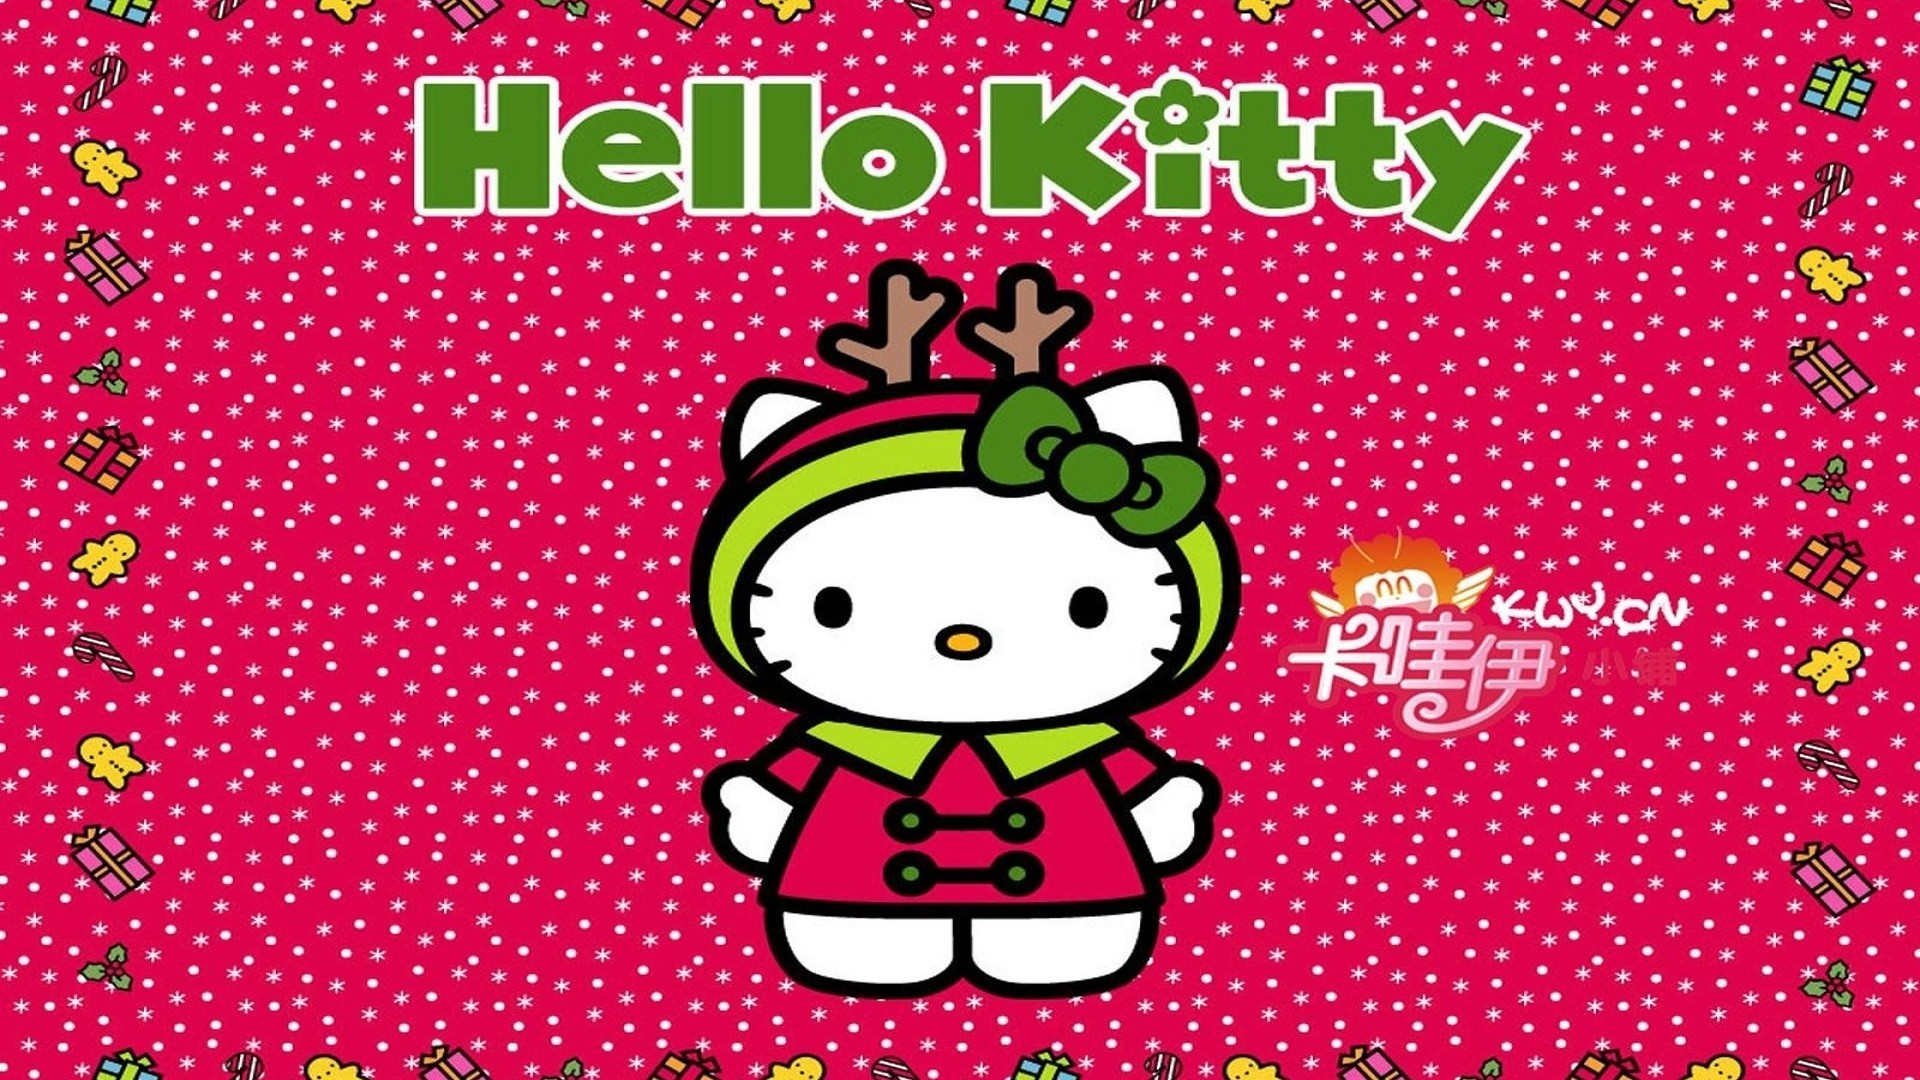 Hello kitty wallpaper pictures 66 images 1920x1080 1920x1080 hello kitty kids baby children christmas hello kitty christmas voltagebd Image collections